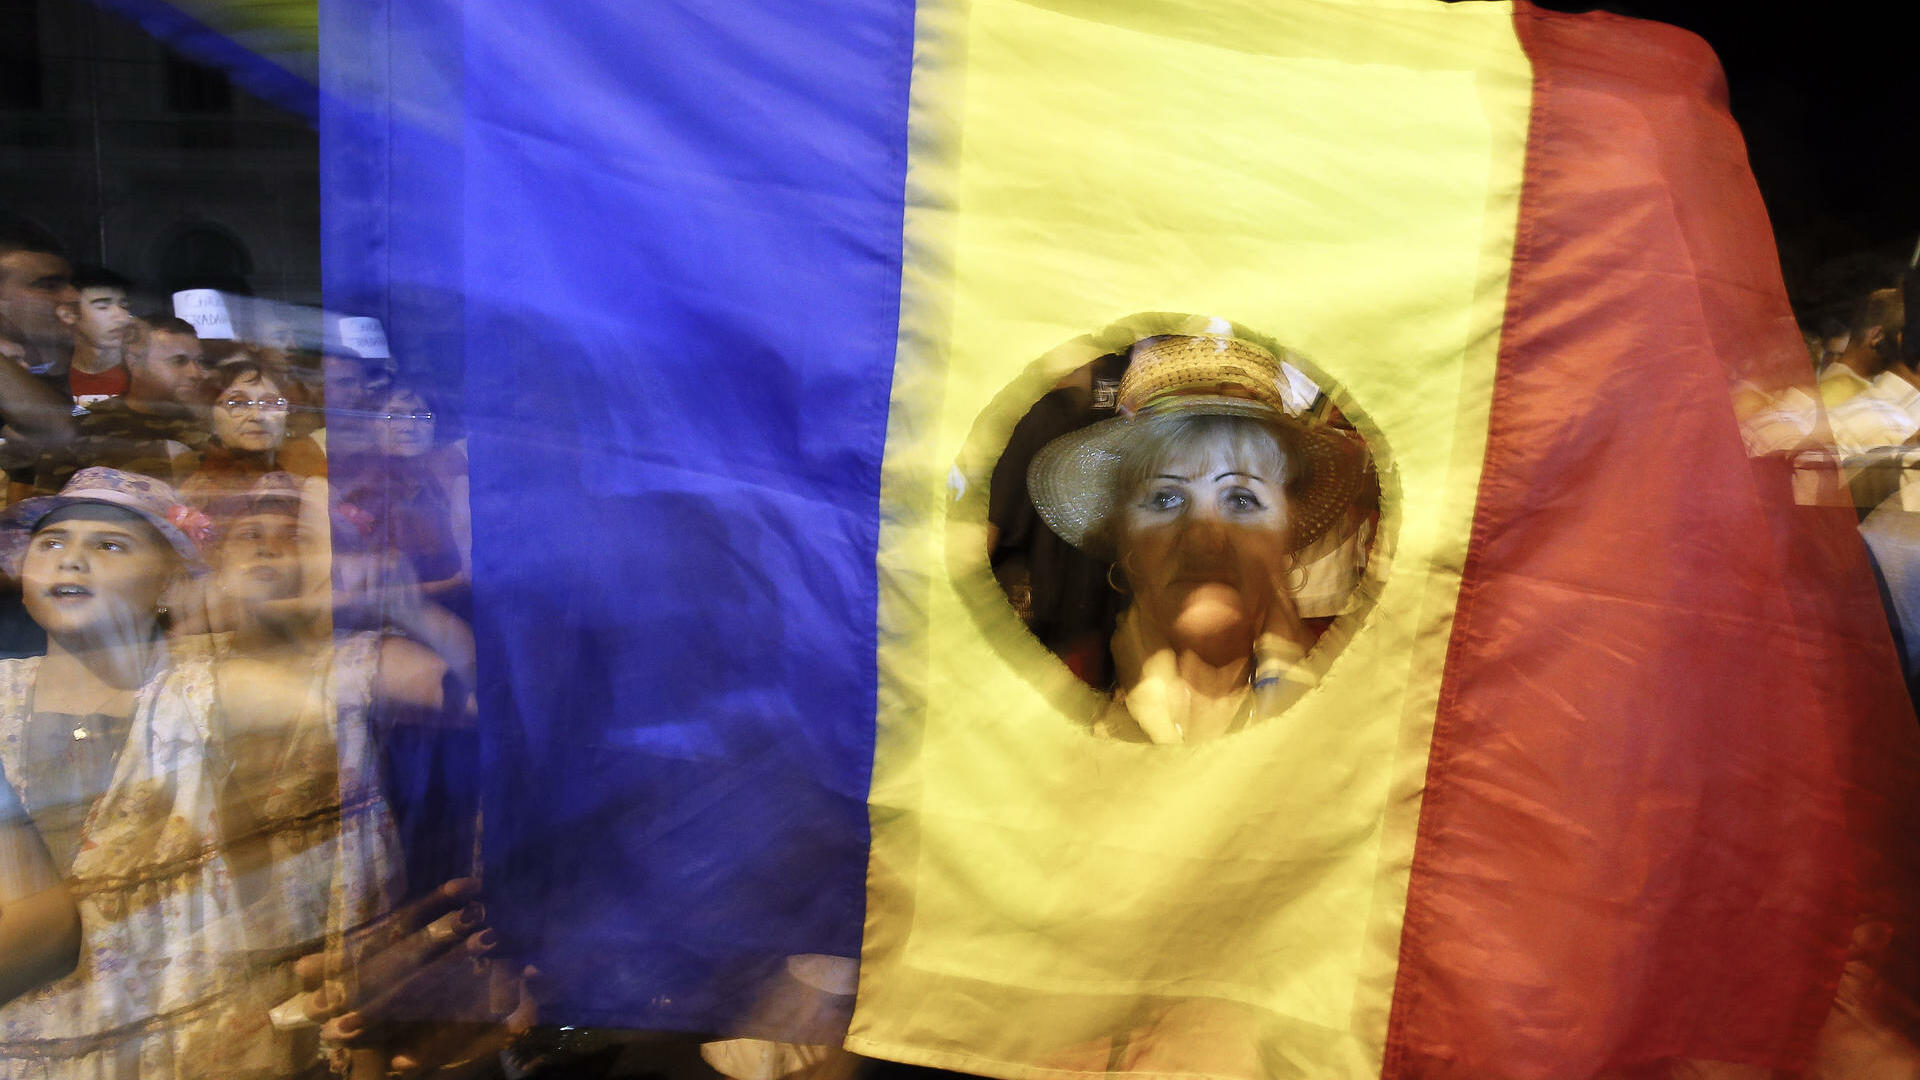 A woman peers through a Romanian flag during a protest against President Traian Basescu in Bucharest, Romania, Quelle: dapd